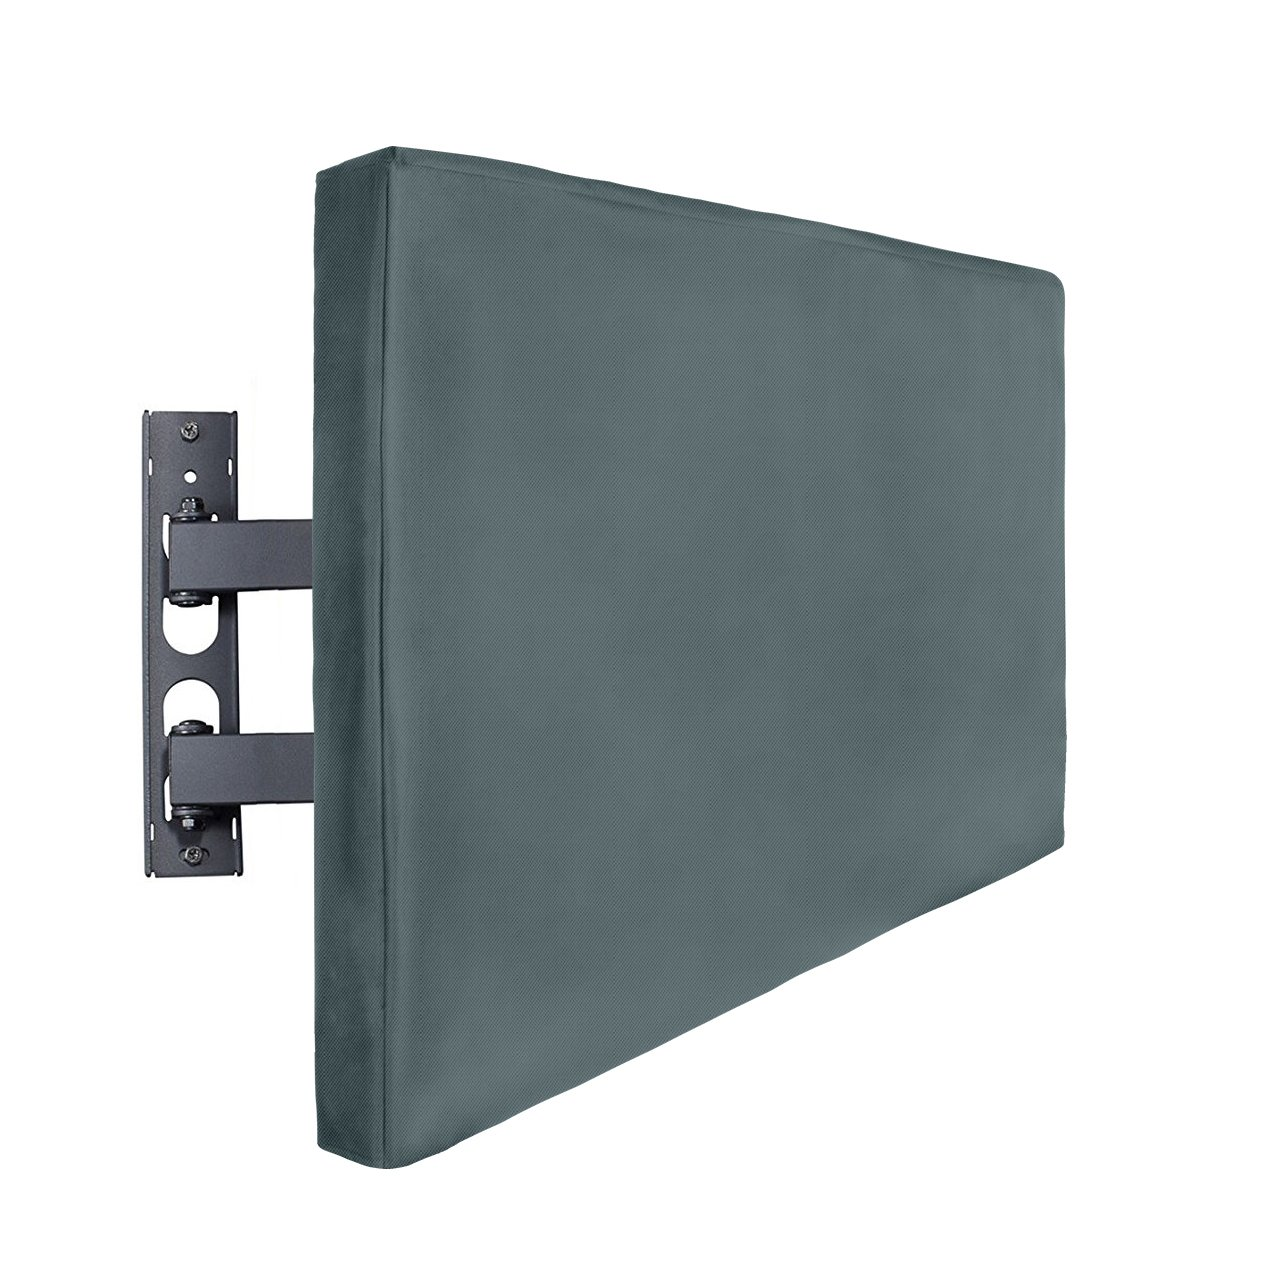 SortWise® Outdoor TV Cover - 40 1/2' x 24 3/8' x 4', Black Waterproof and Durable Universal Protector for Any Flat Screen LCD, LED, or Plasma TVs - Compatible with Standard Mounts and Stands, Includes W/ 2 Remote Controller Pocket on Back for Easy Use